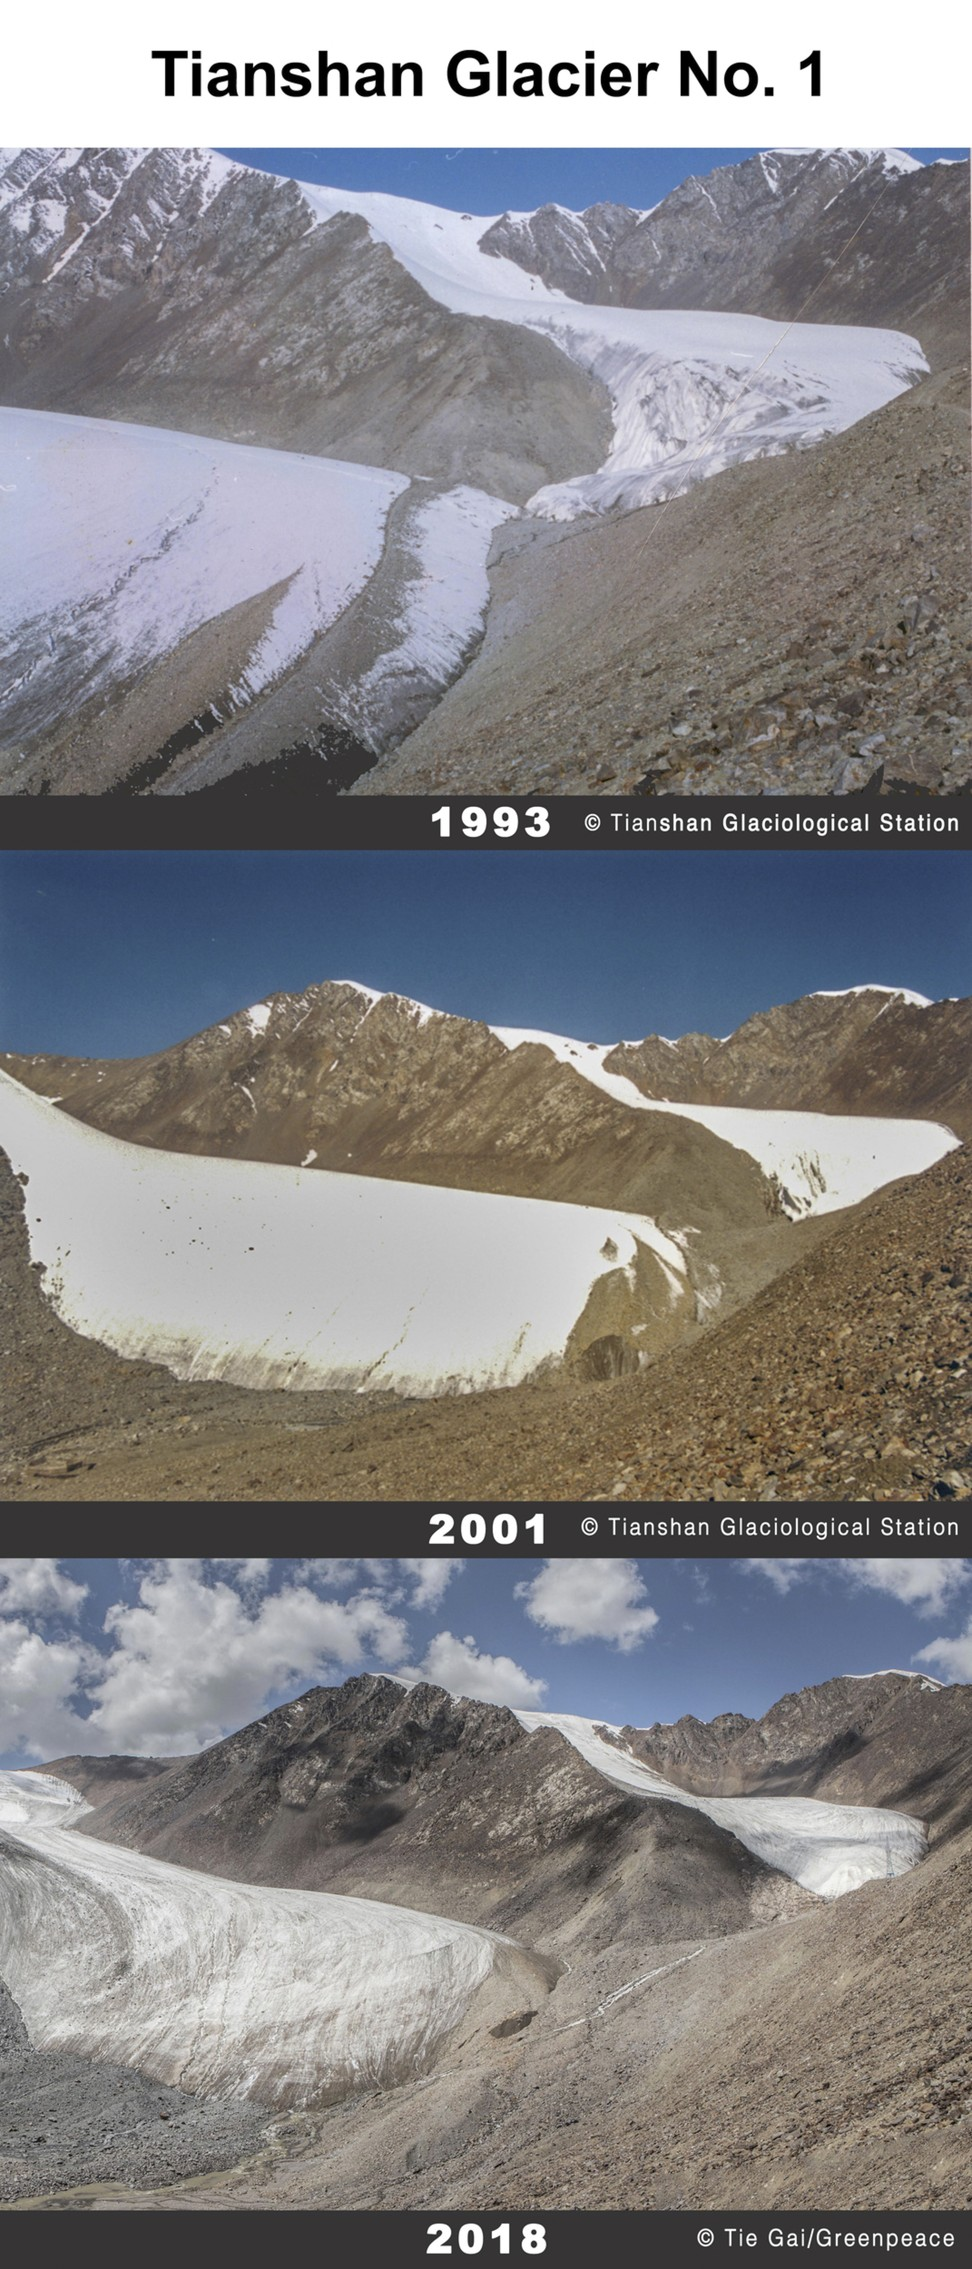 Greenpeace's comparison of Tianshan Glacier No 1, in Xinjiang, over a period of 15 years. Photo: Greenpeace